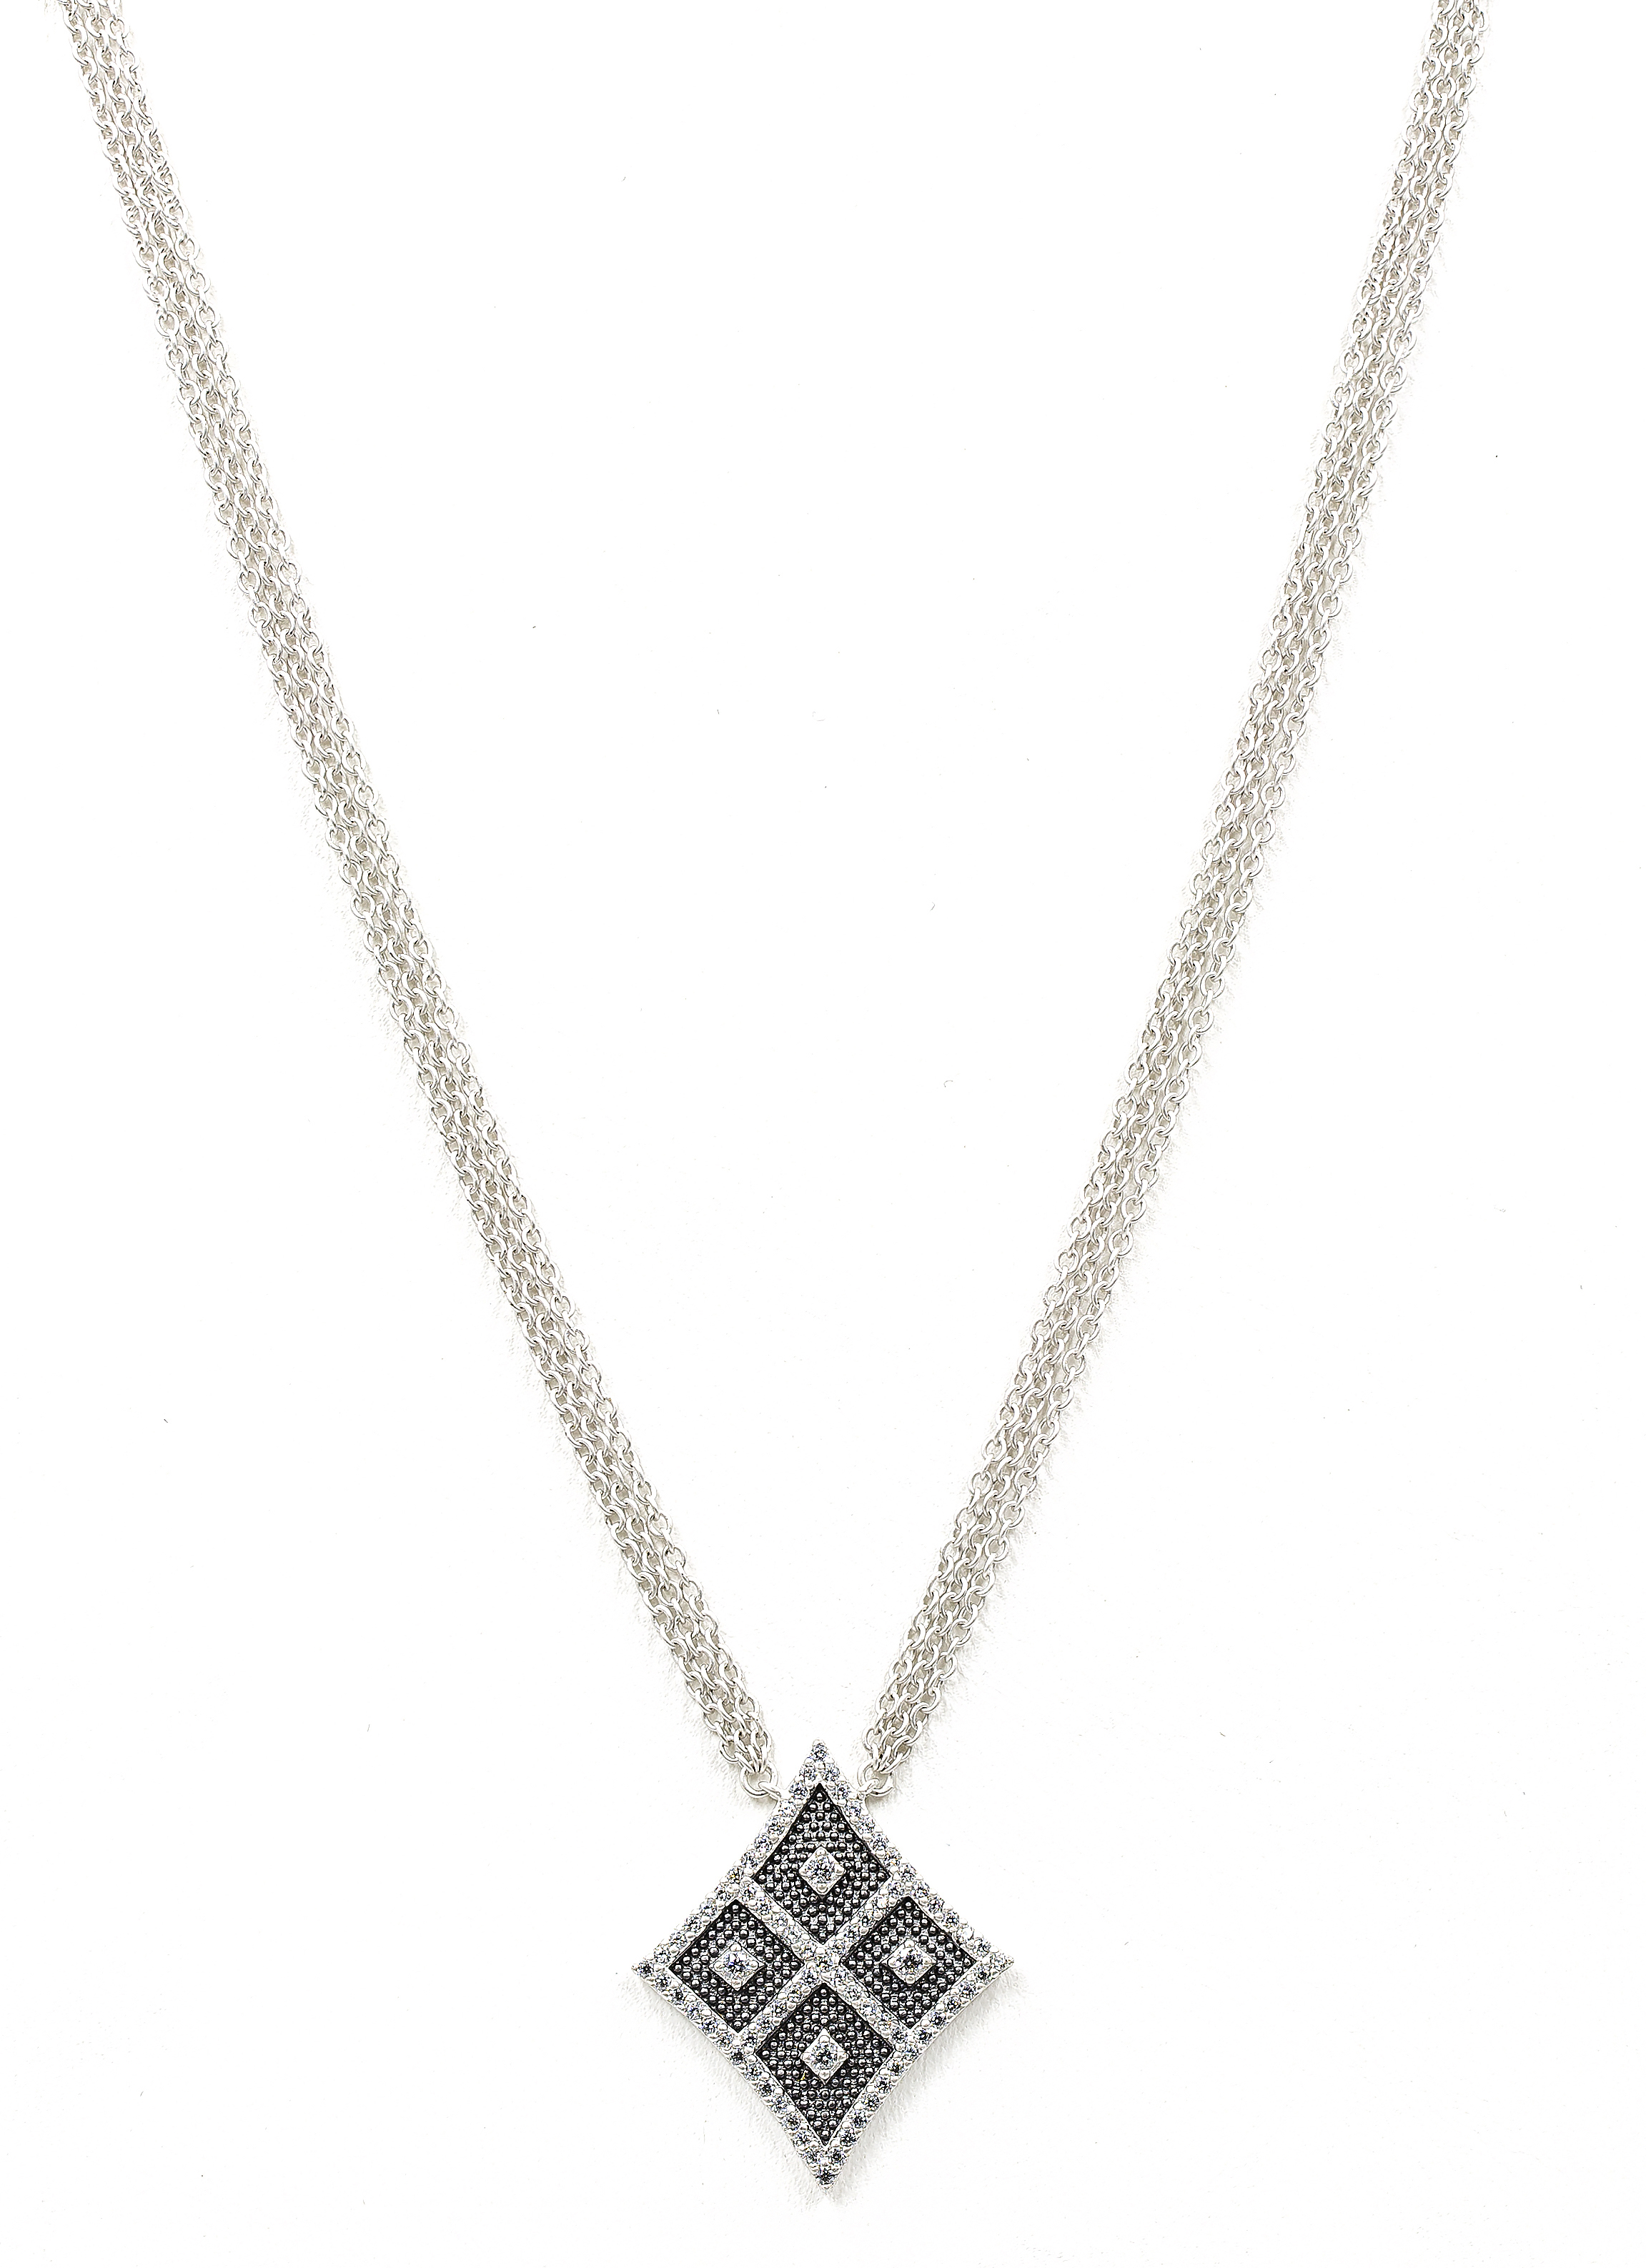 Freida Rothman Contemporary Deco necklace | JCK On Your Market